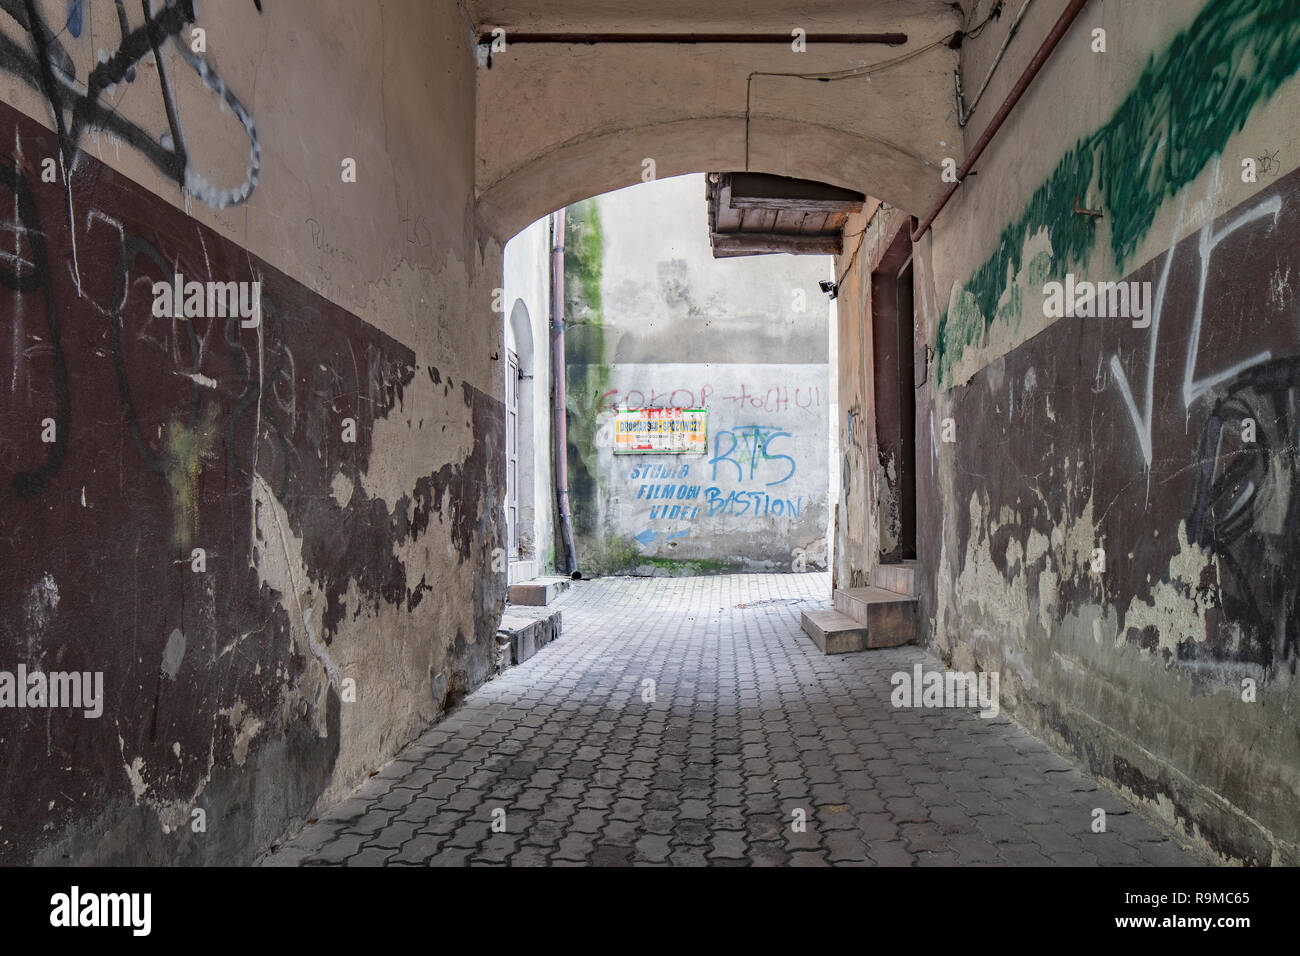 Old architecture in Piotrkow Trybunalski , a yard. City of the first jewish ghetto established by Germans in the occupied Poland during world war II. - Stock Image